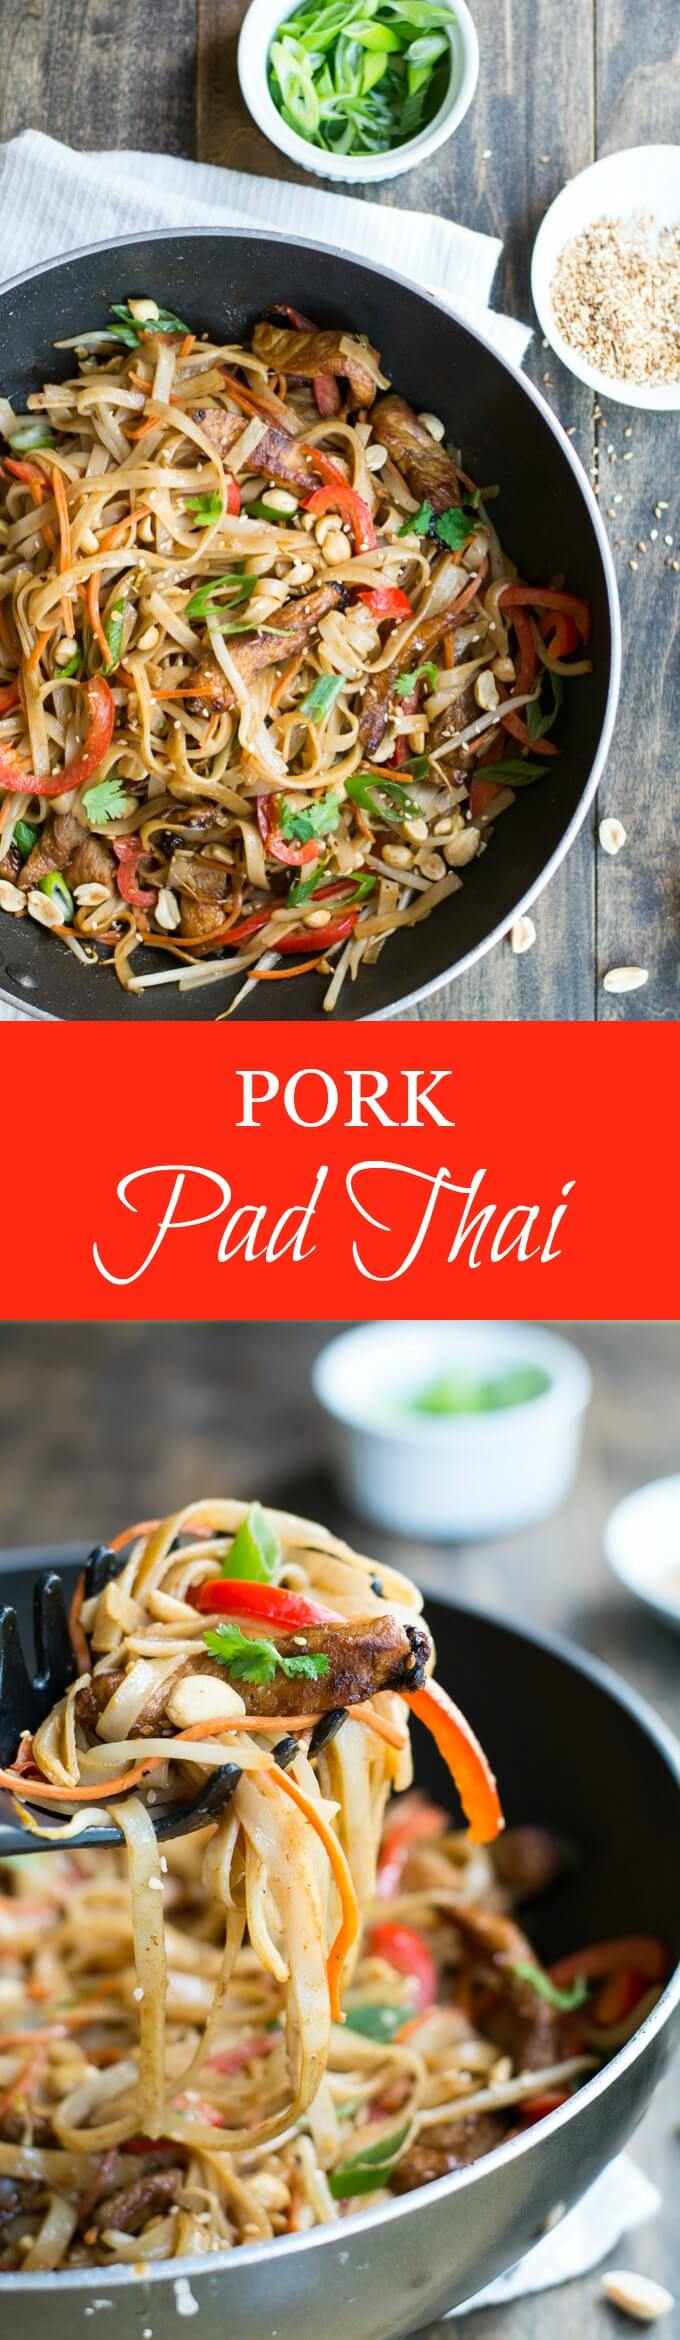 Skip going out to eat and make this Pork Pad Thai at home for a veggie and protein filled delicious dinner that comes together in just 30 minutes!